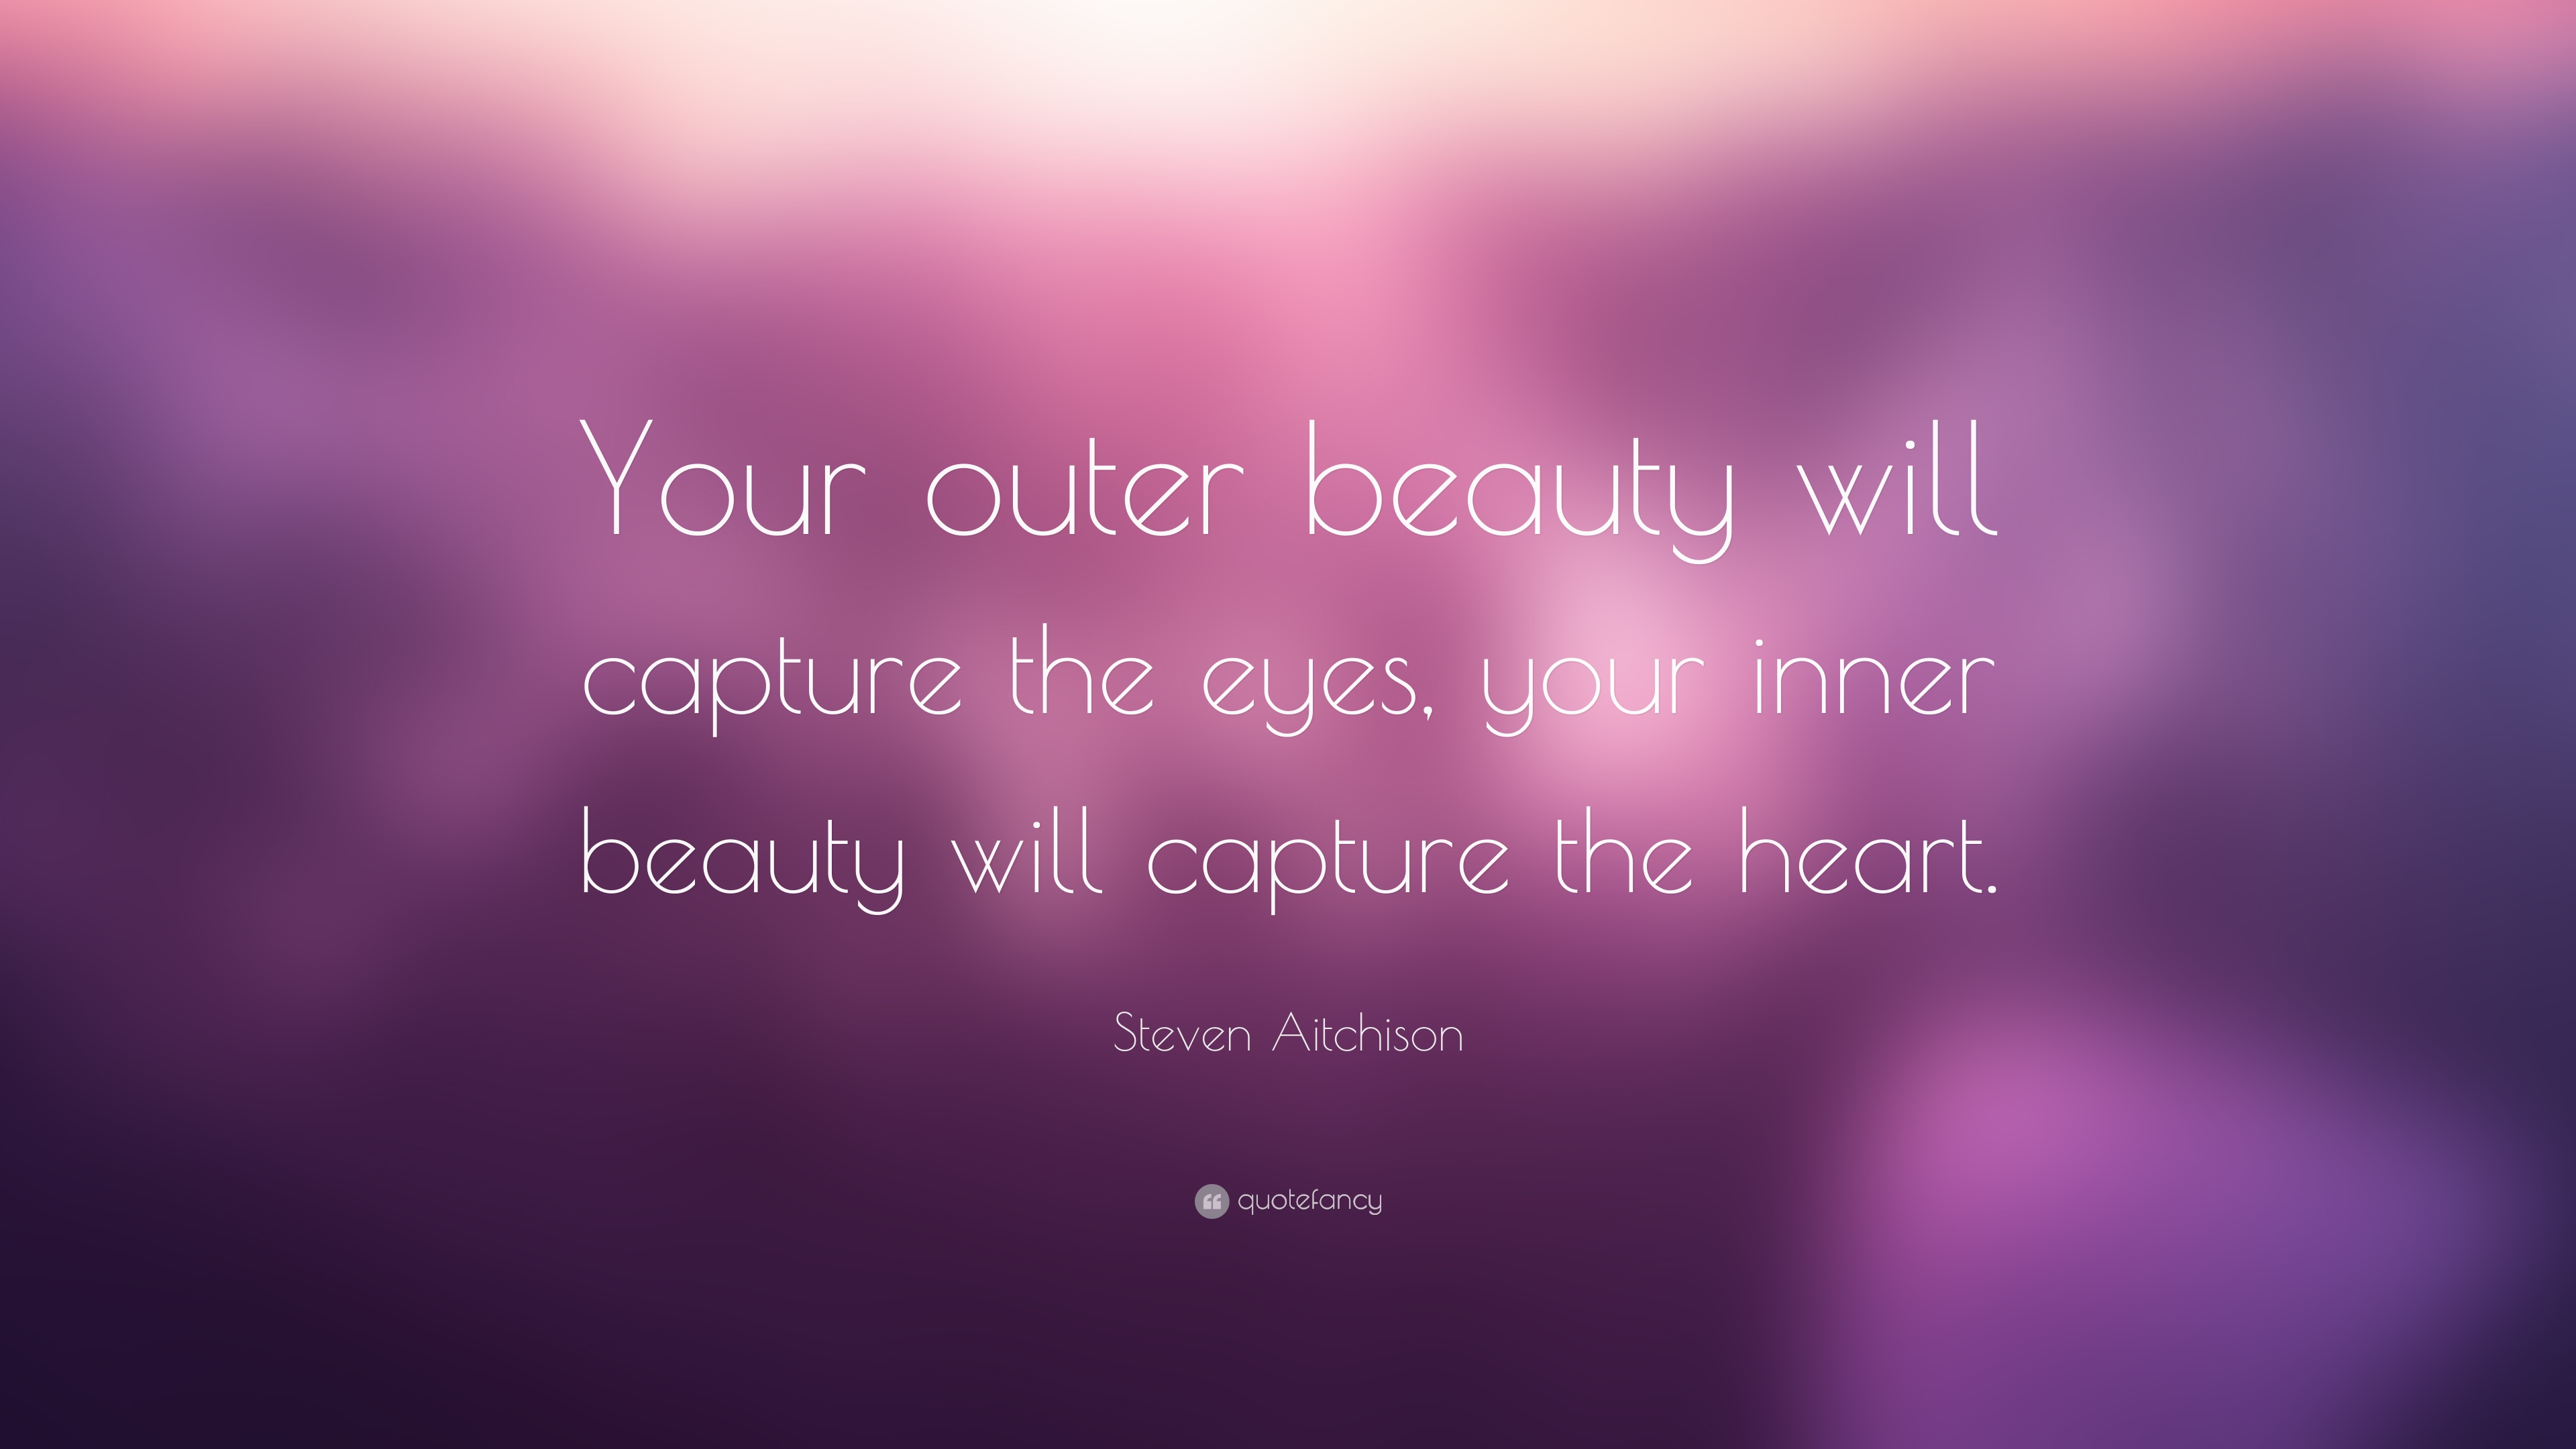 Quotes About Strength And Beauty Beauty Quotes 30 Wallpapers  Quotefancy